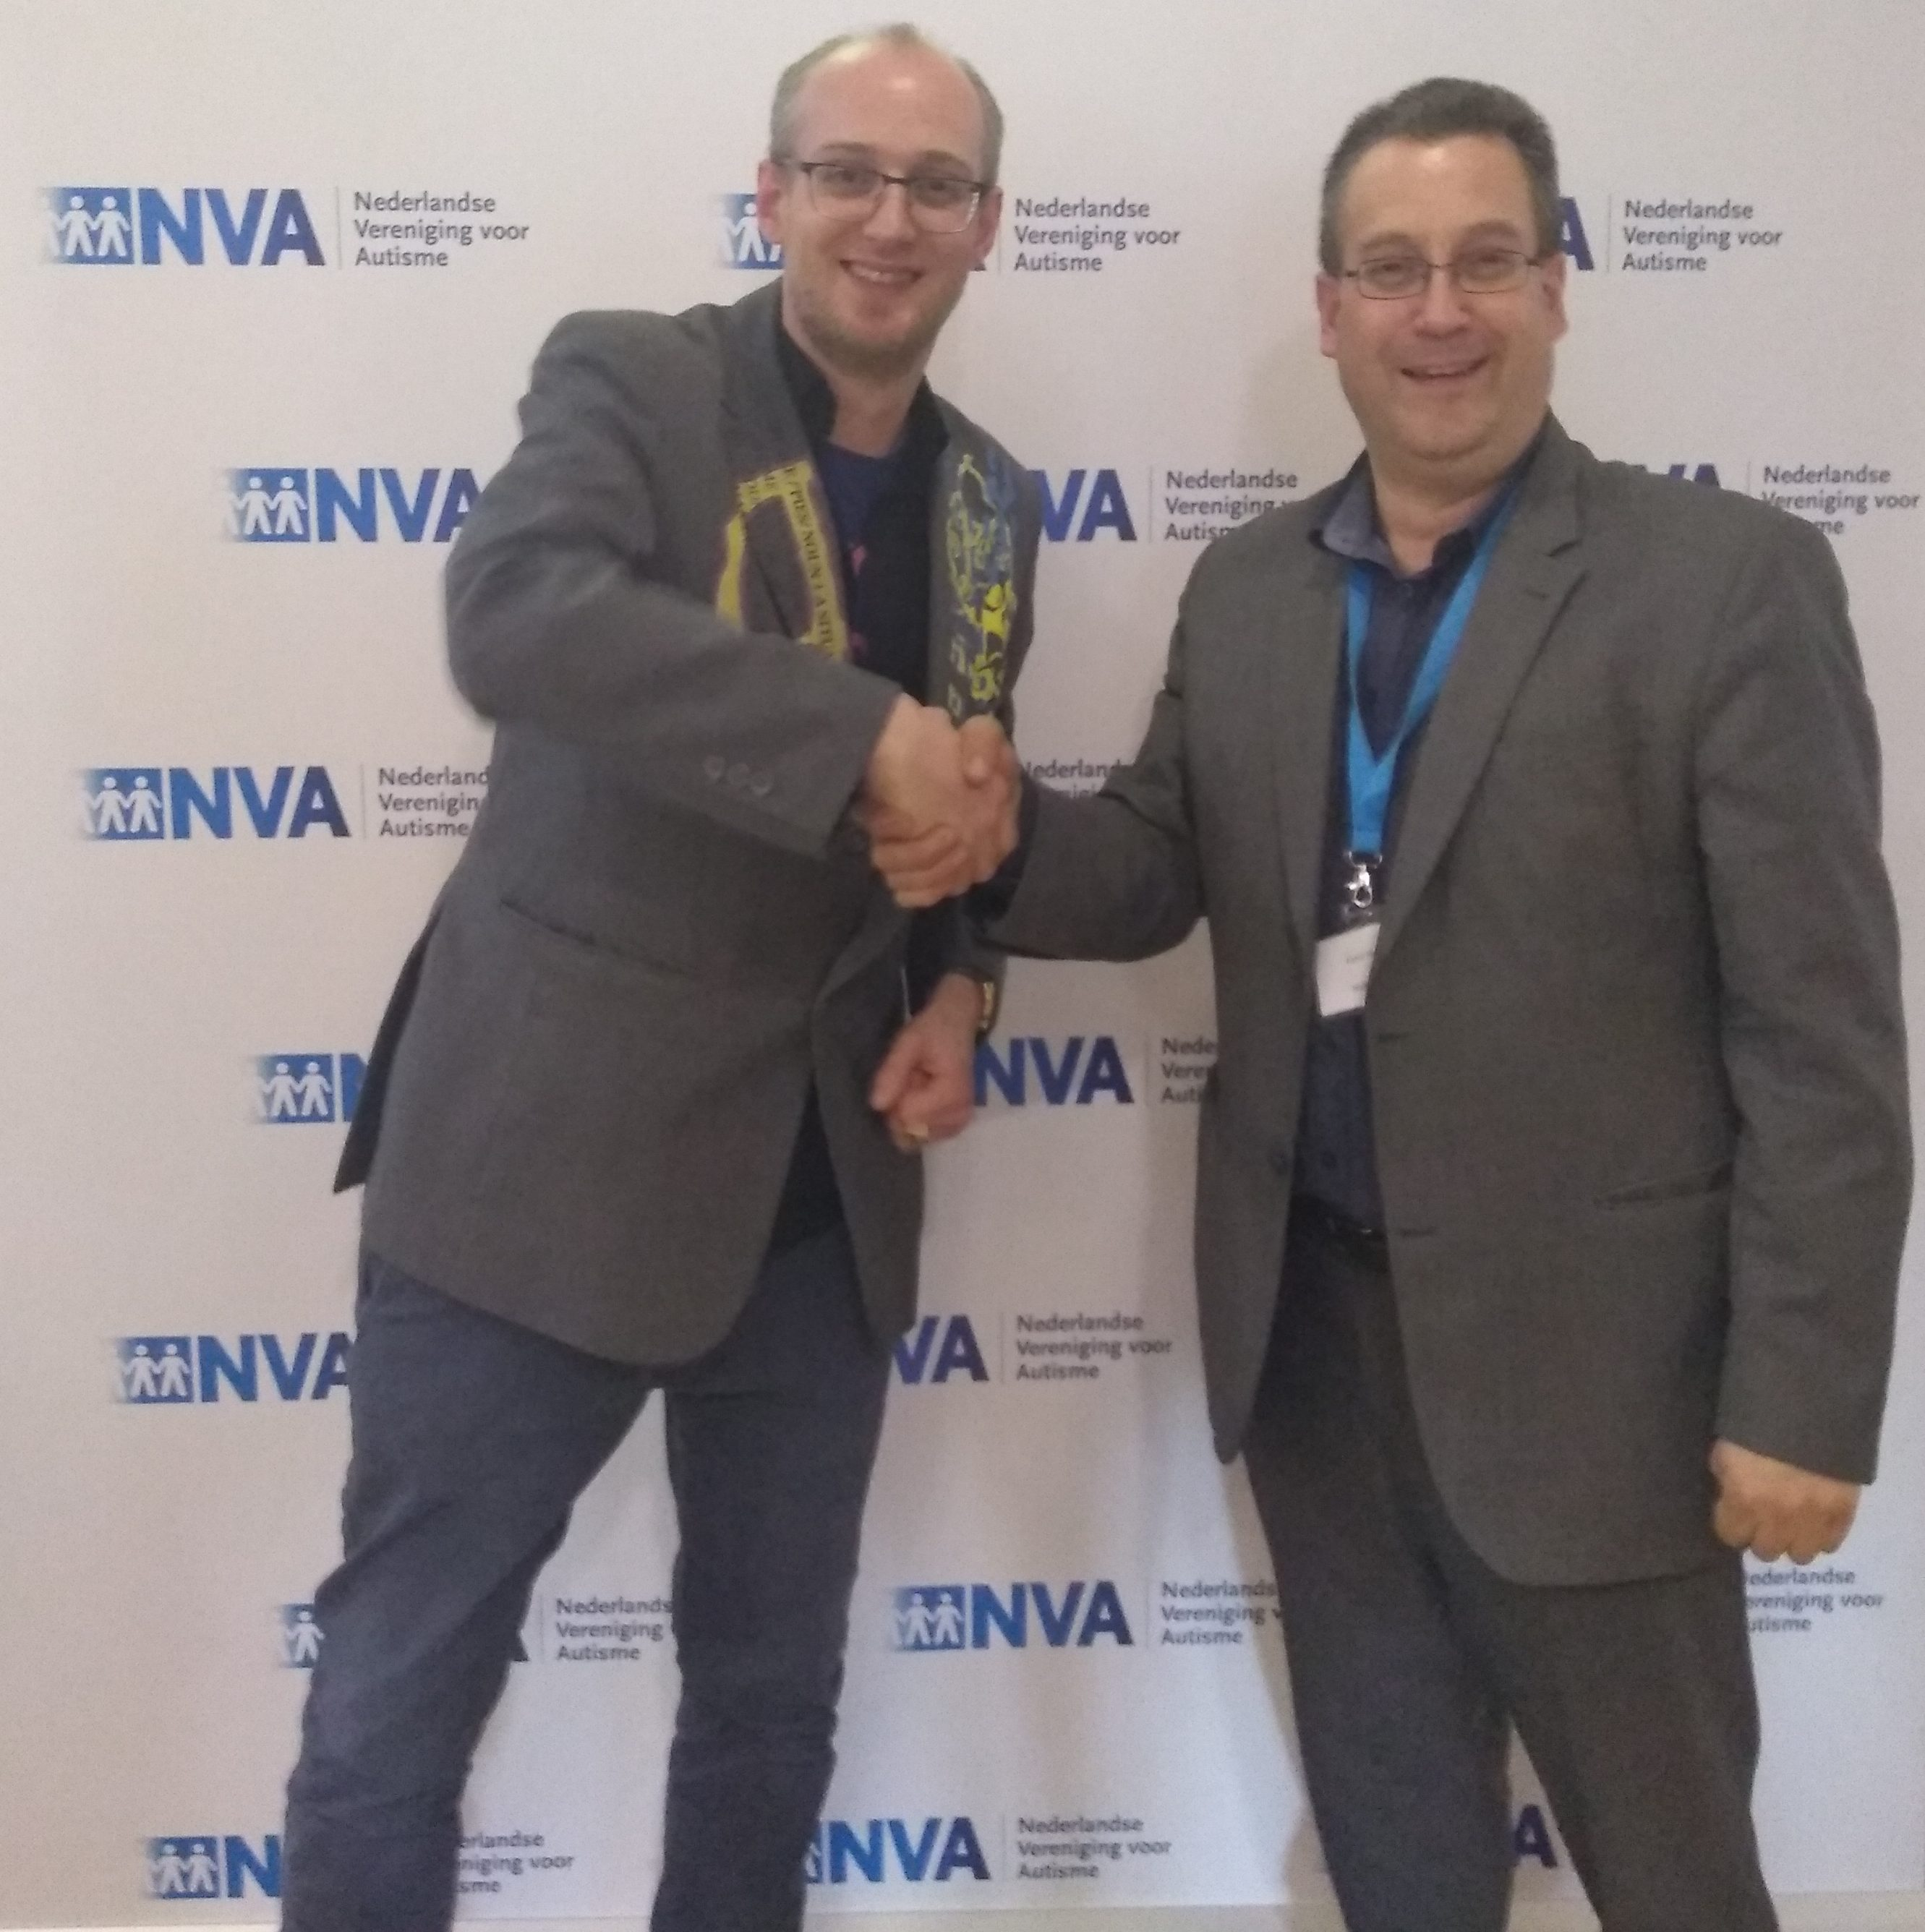 NVA and Neurodiversity foundation working together